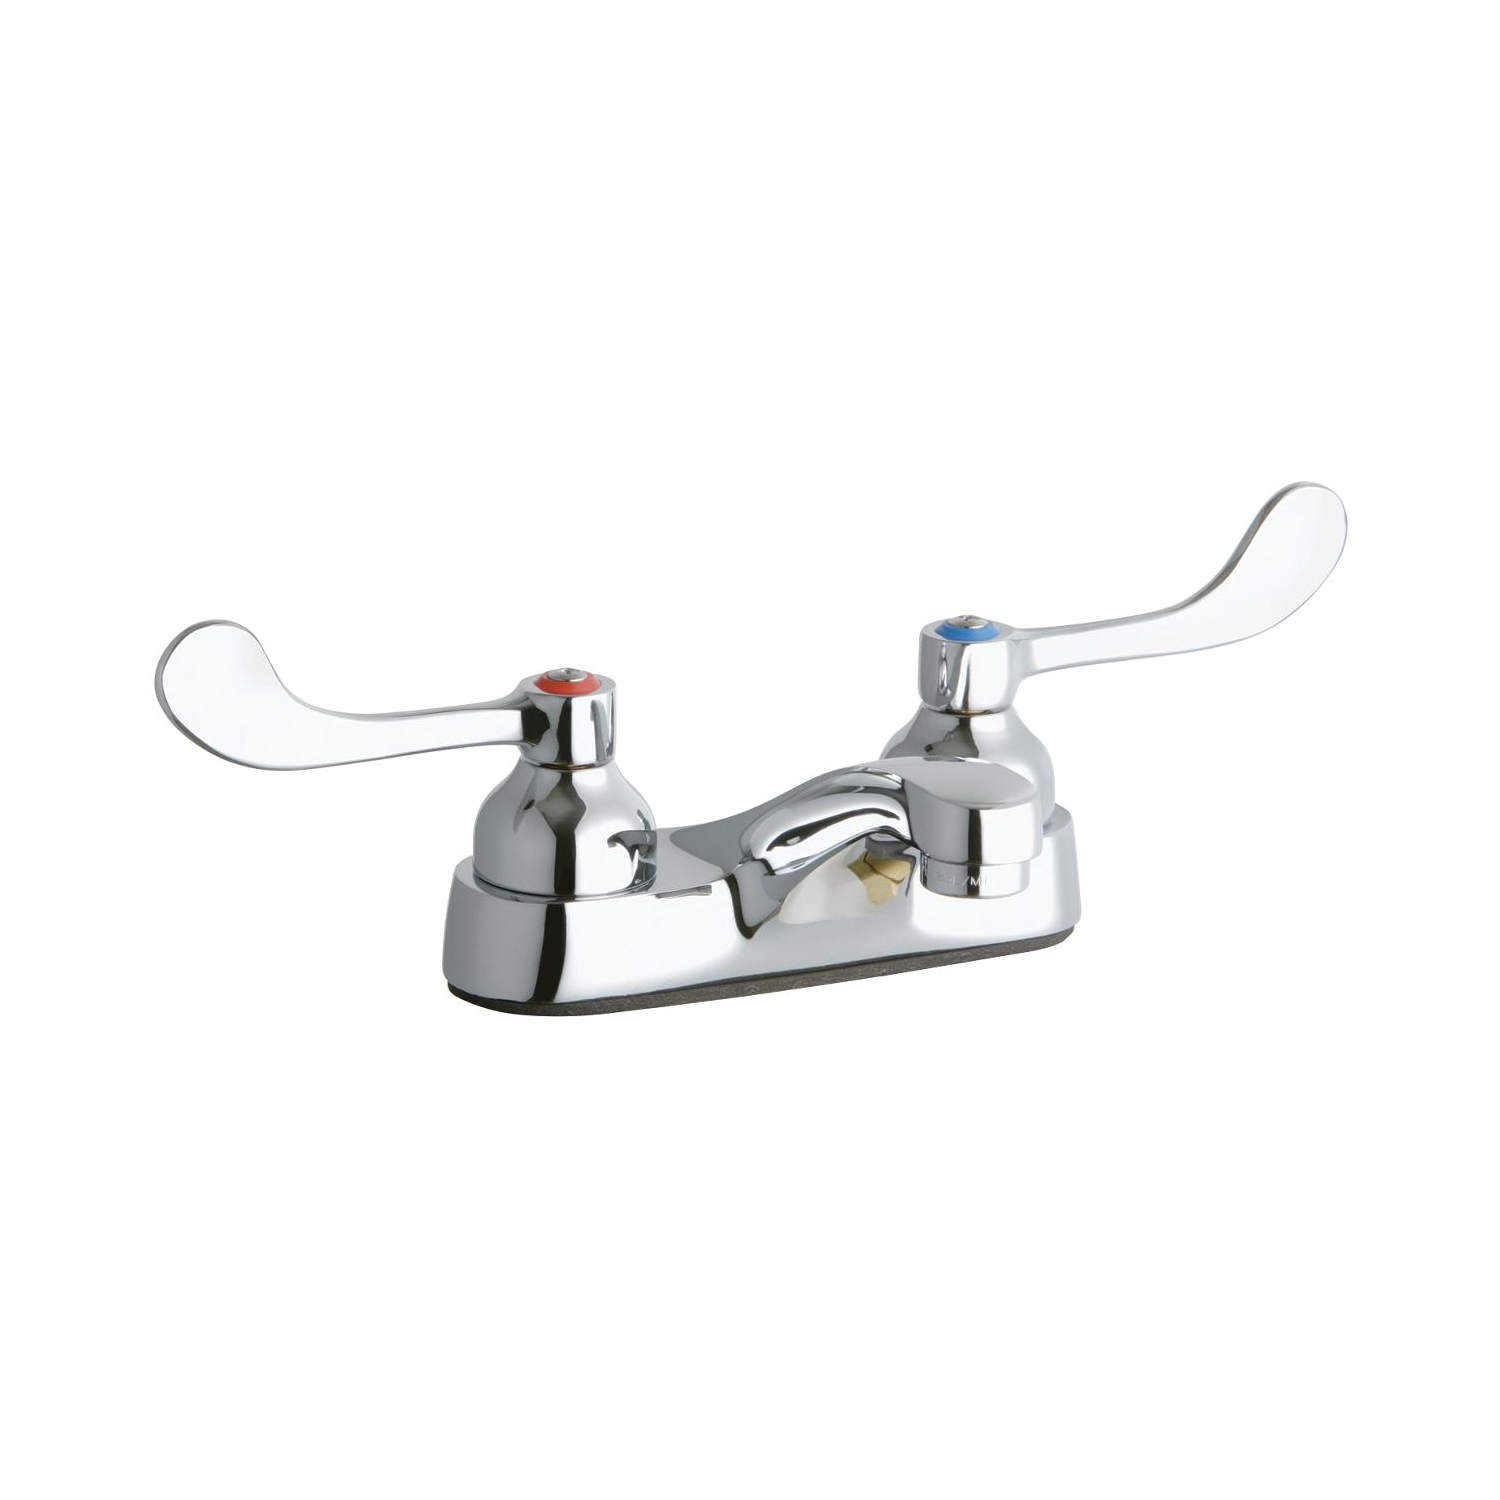 Elkay® LK402T4 Exposed Centerset Bathroom Faucet, Chrome Plated, 2 Handles, 0.5 gpm